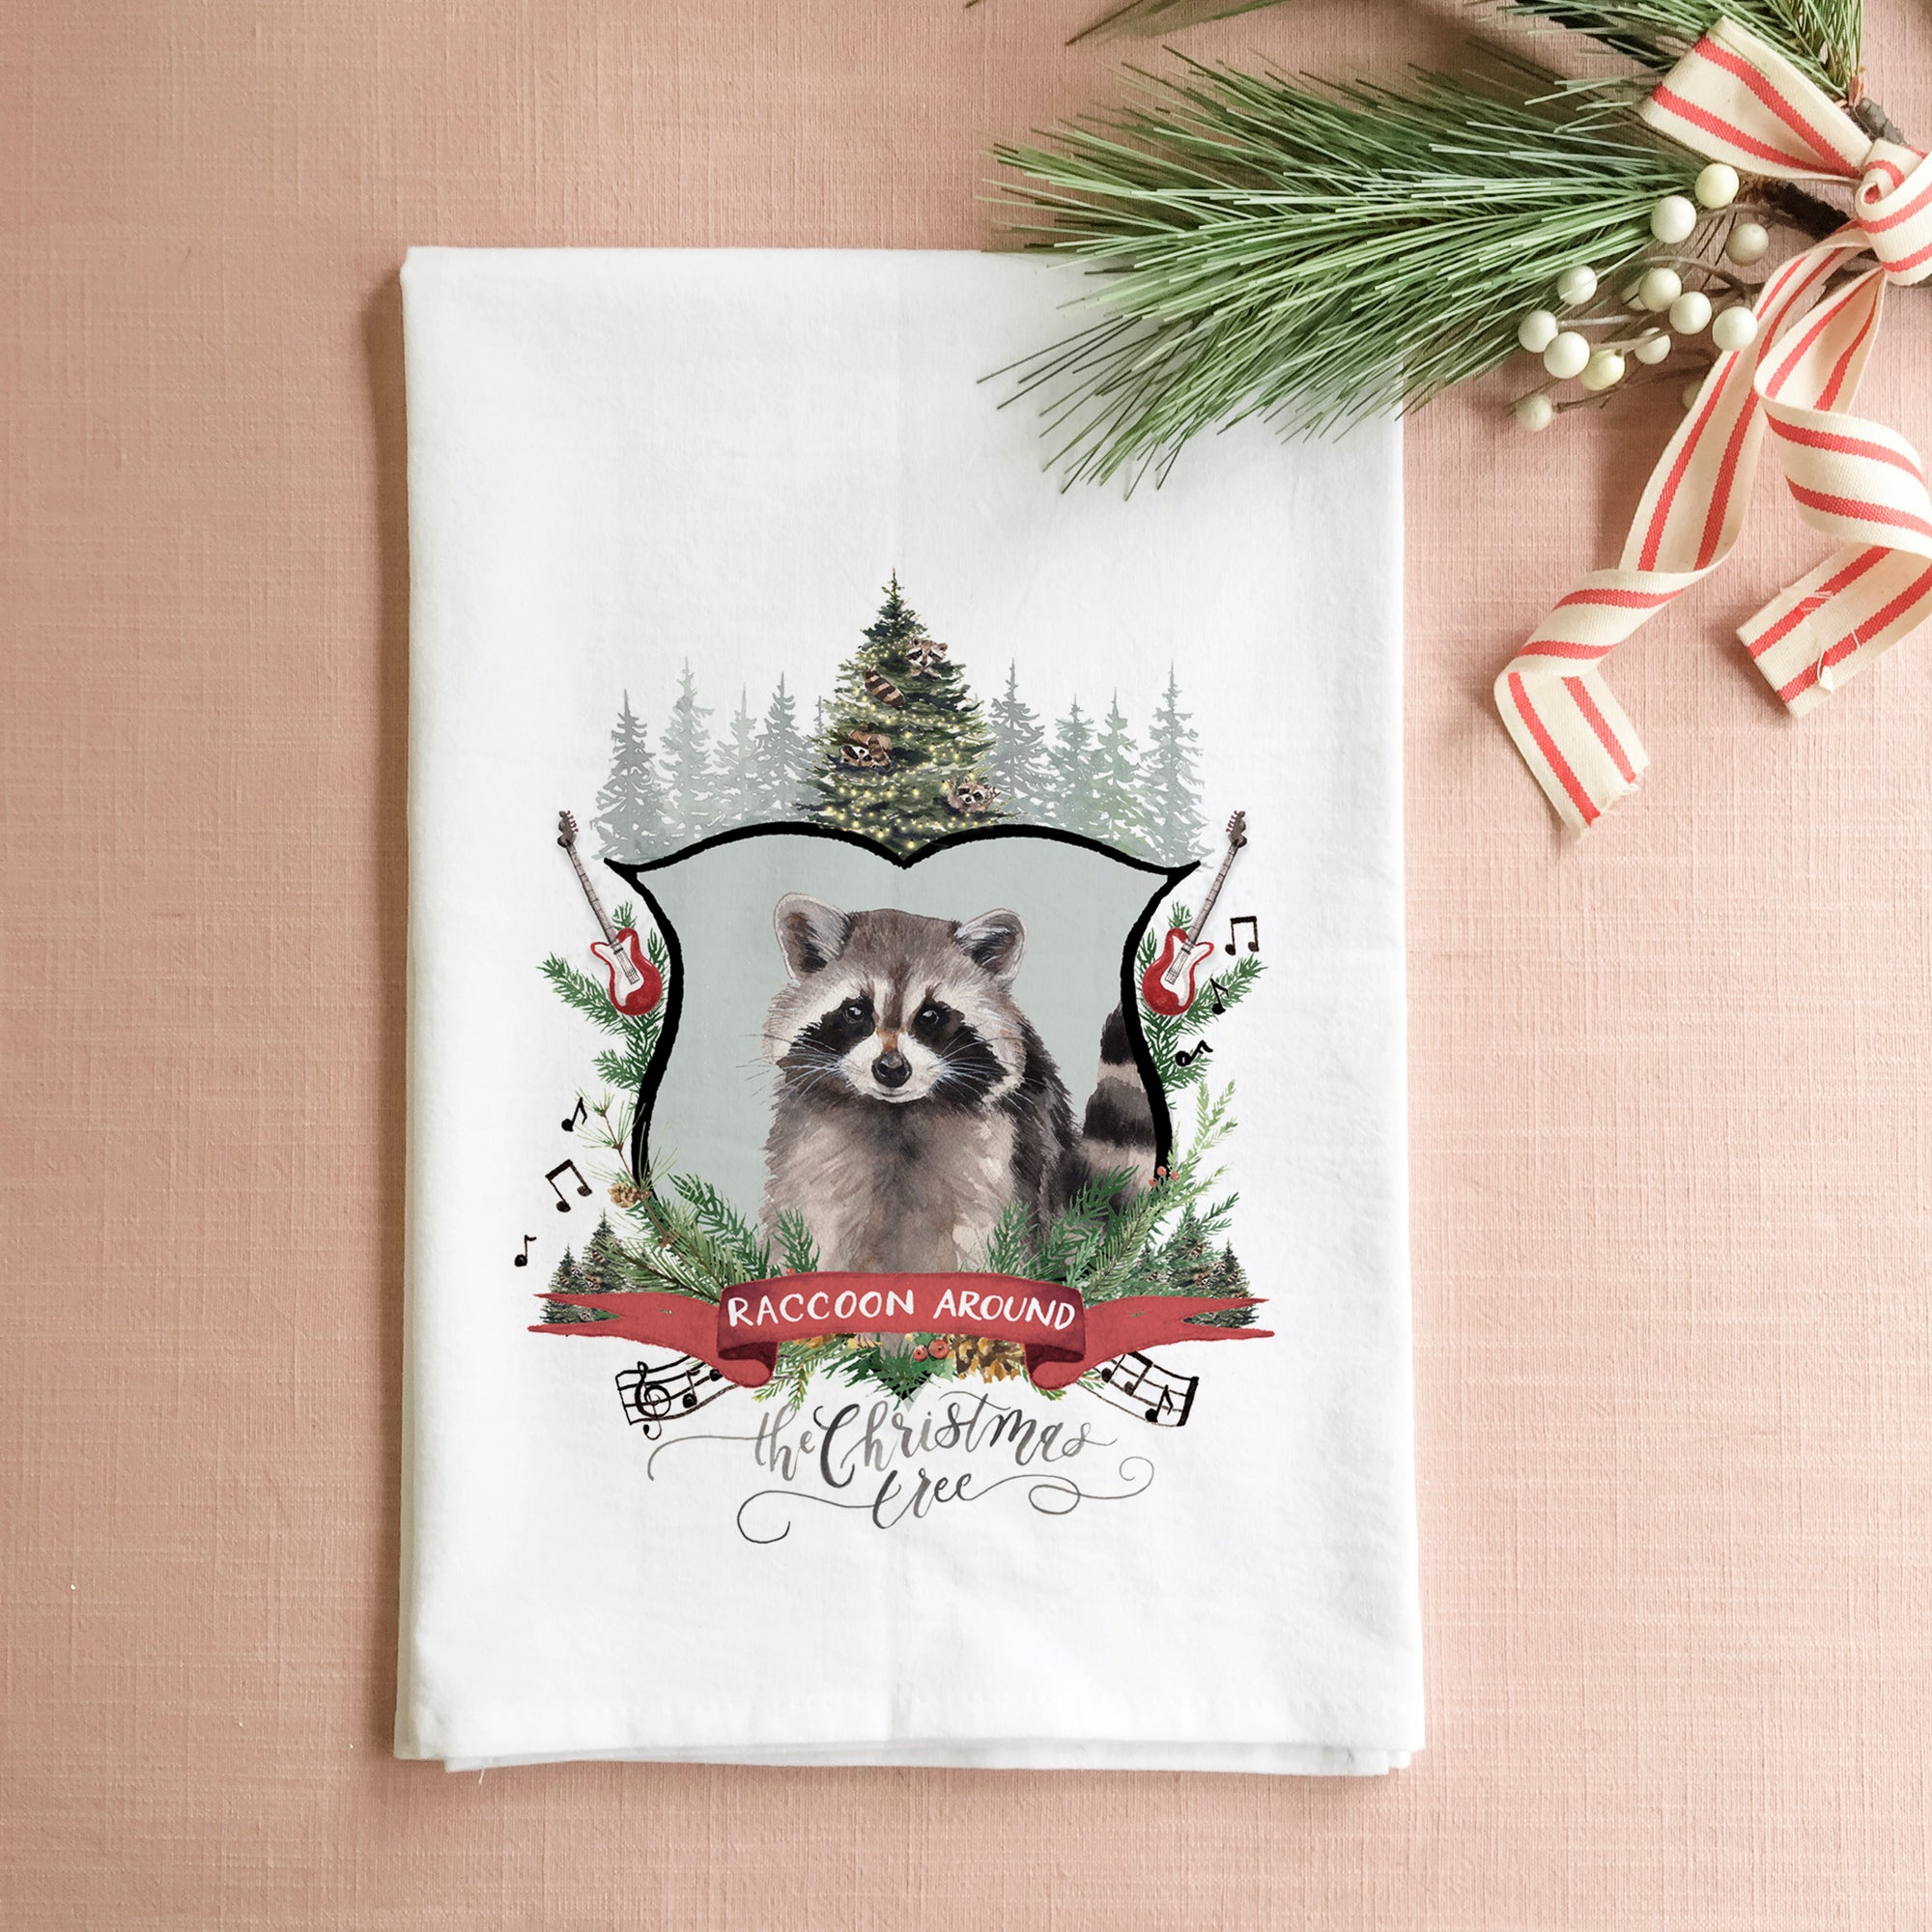 Raccoon Around the Christmas Tree Tea Towel